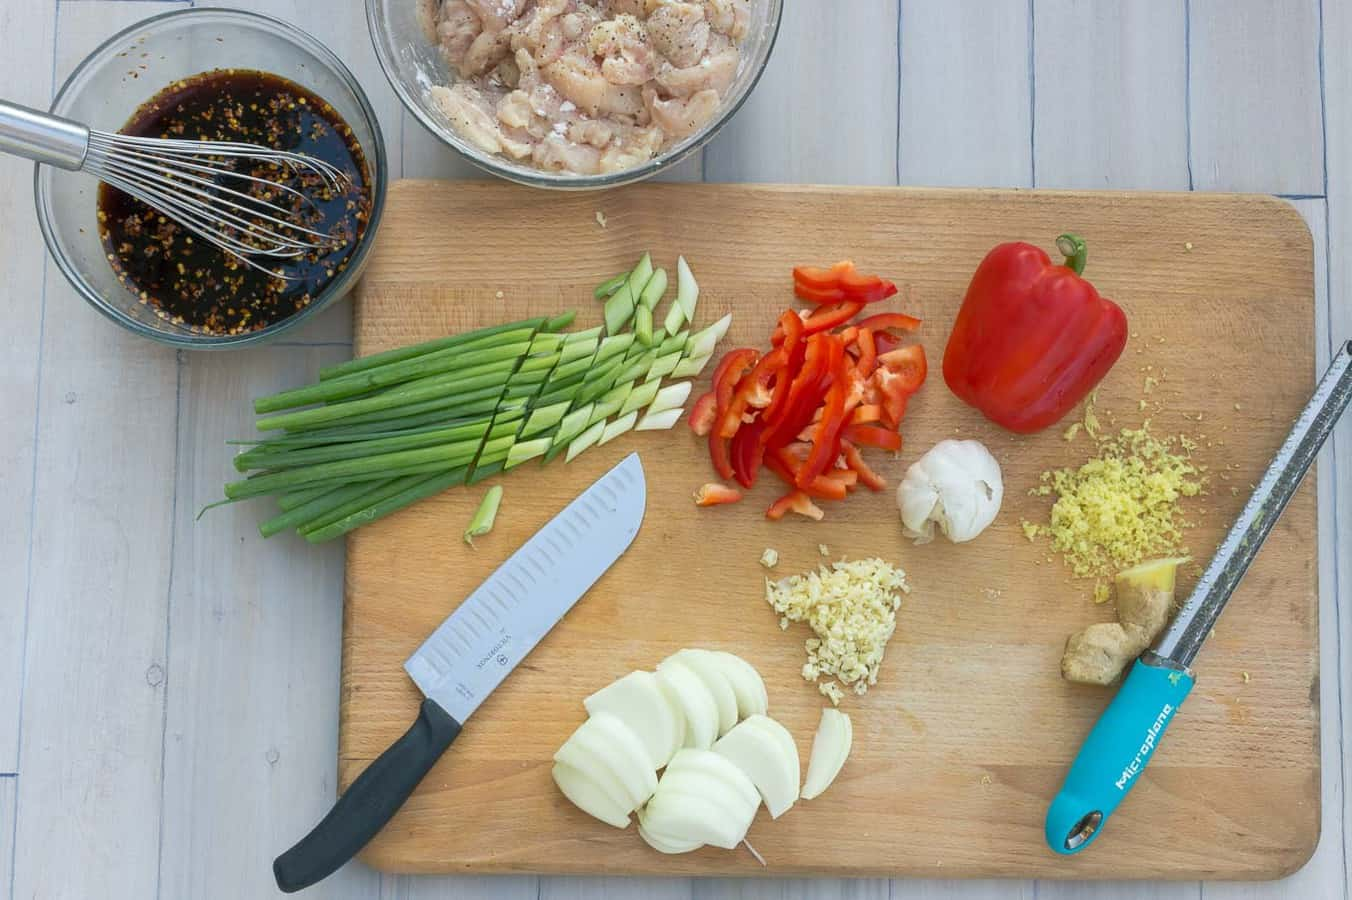 Thai Style Cashew Chicken ingredients on cutting board be chopped and prepared